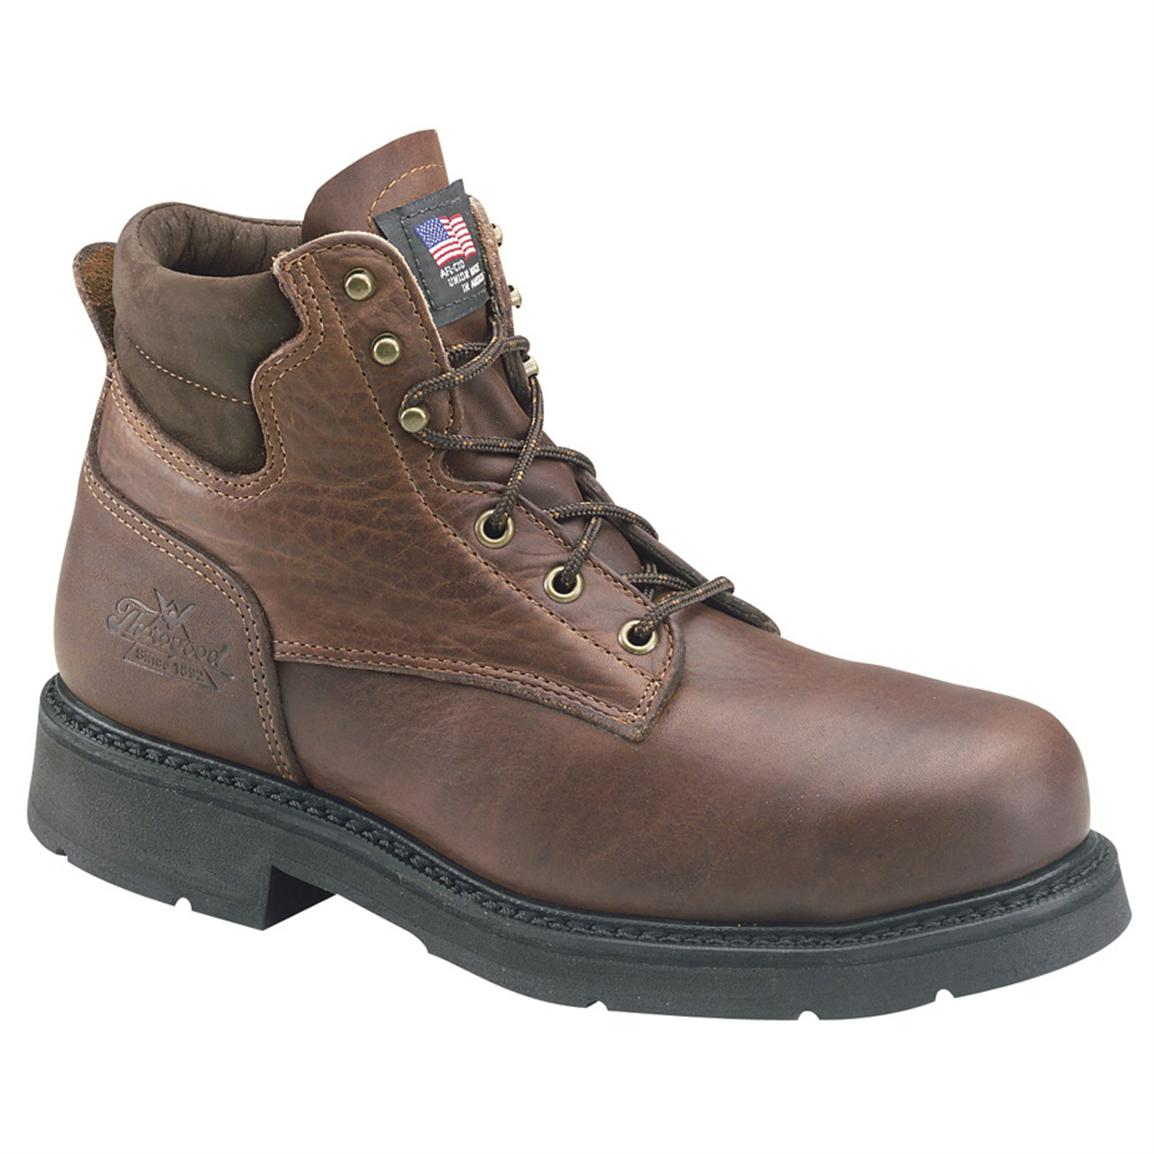 "Men's Thorogood 6"" American Heritage Safety Toe Work Boots, Black Walnut"